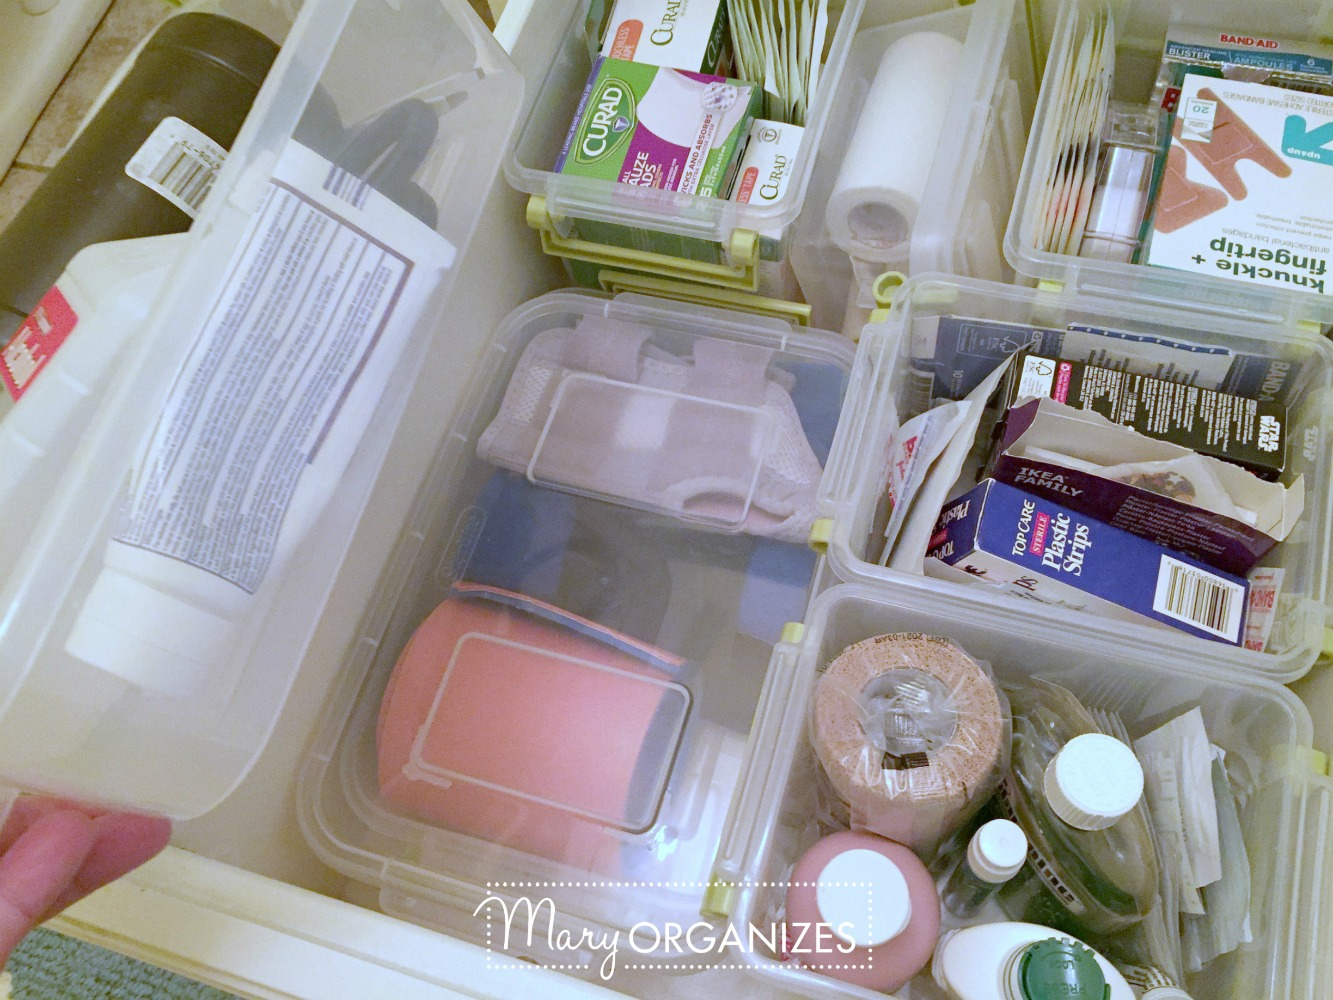 Organizing First Aid Supplies - This is what I do - Mary ORGANIZES 5